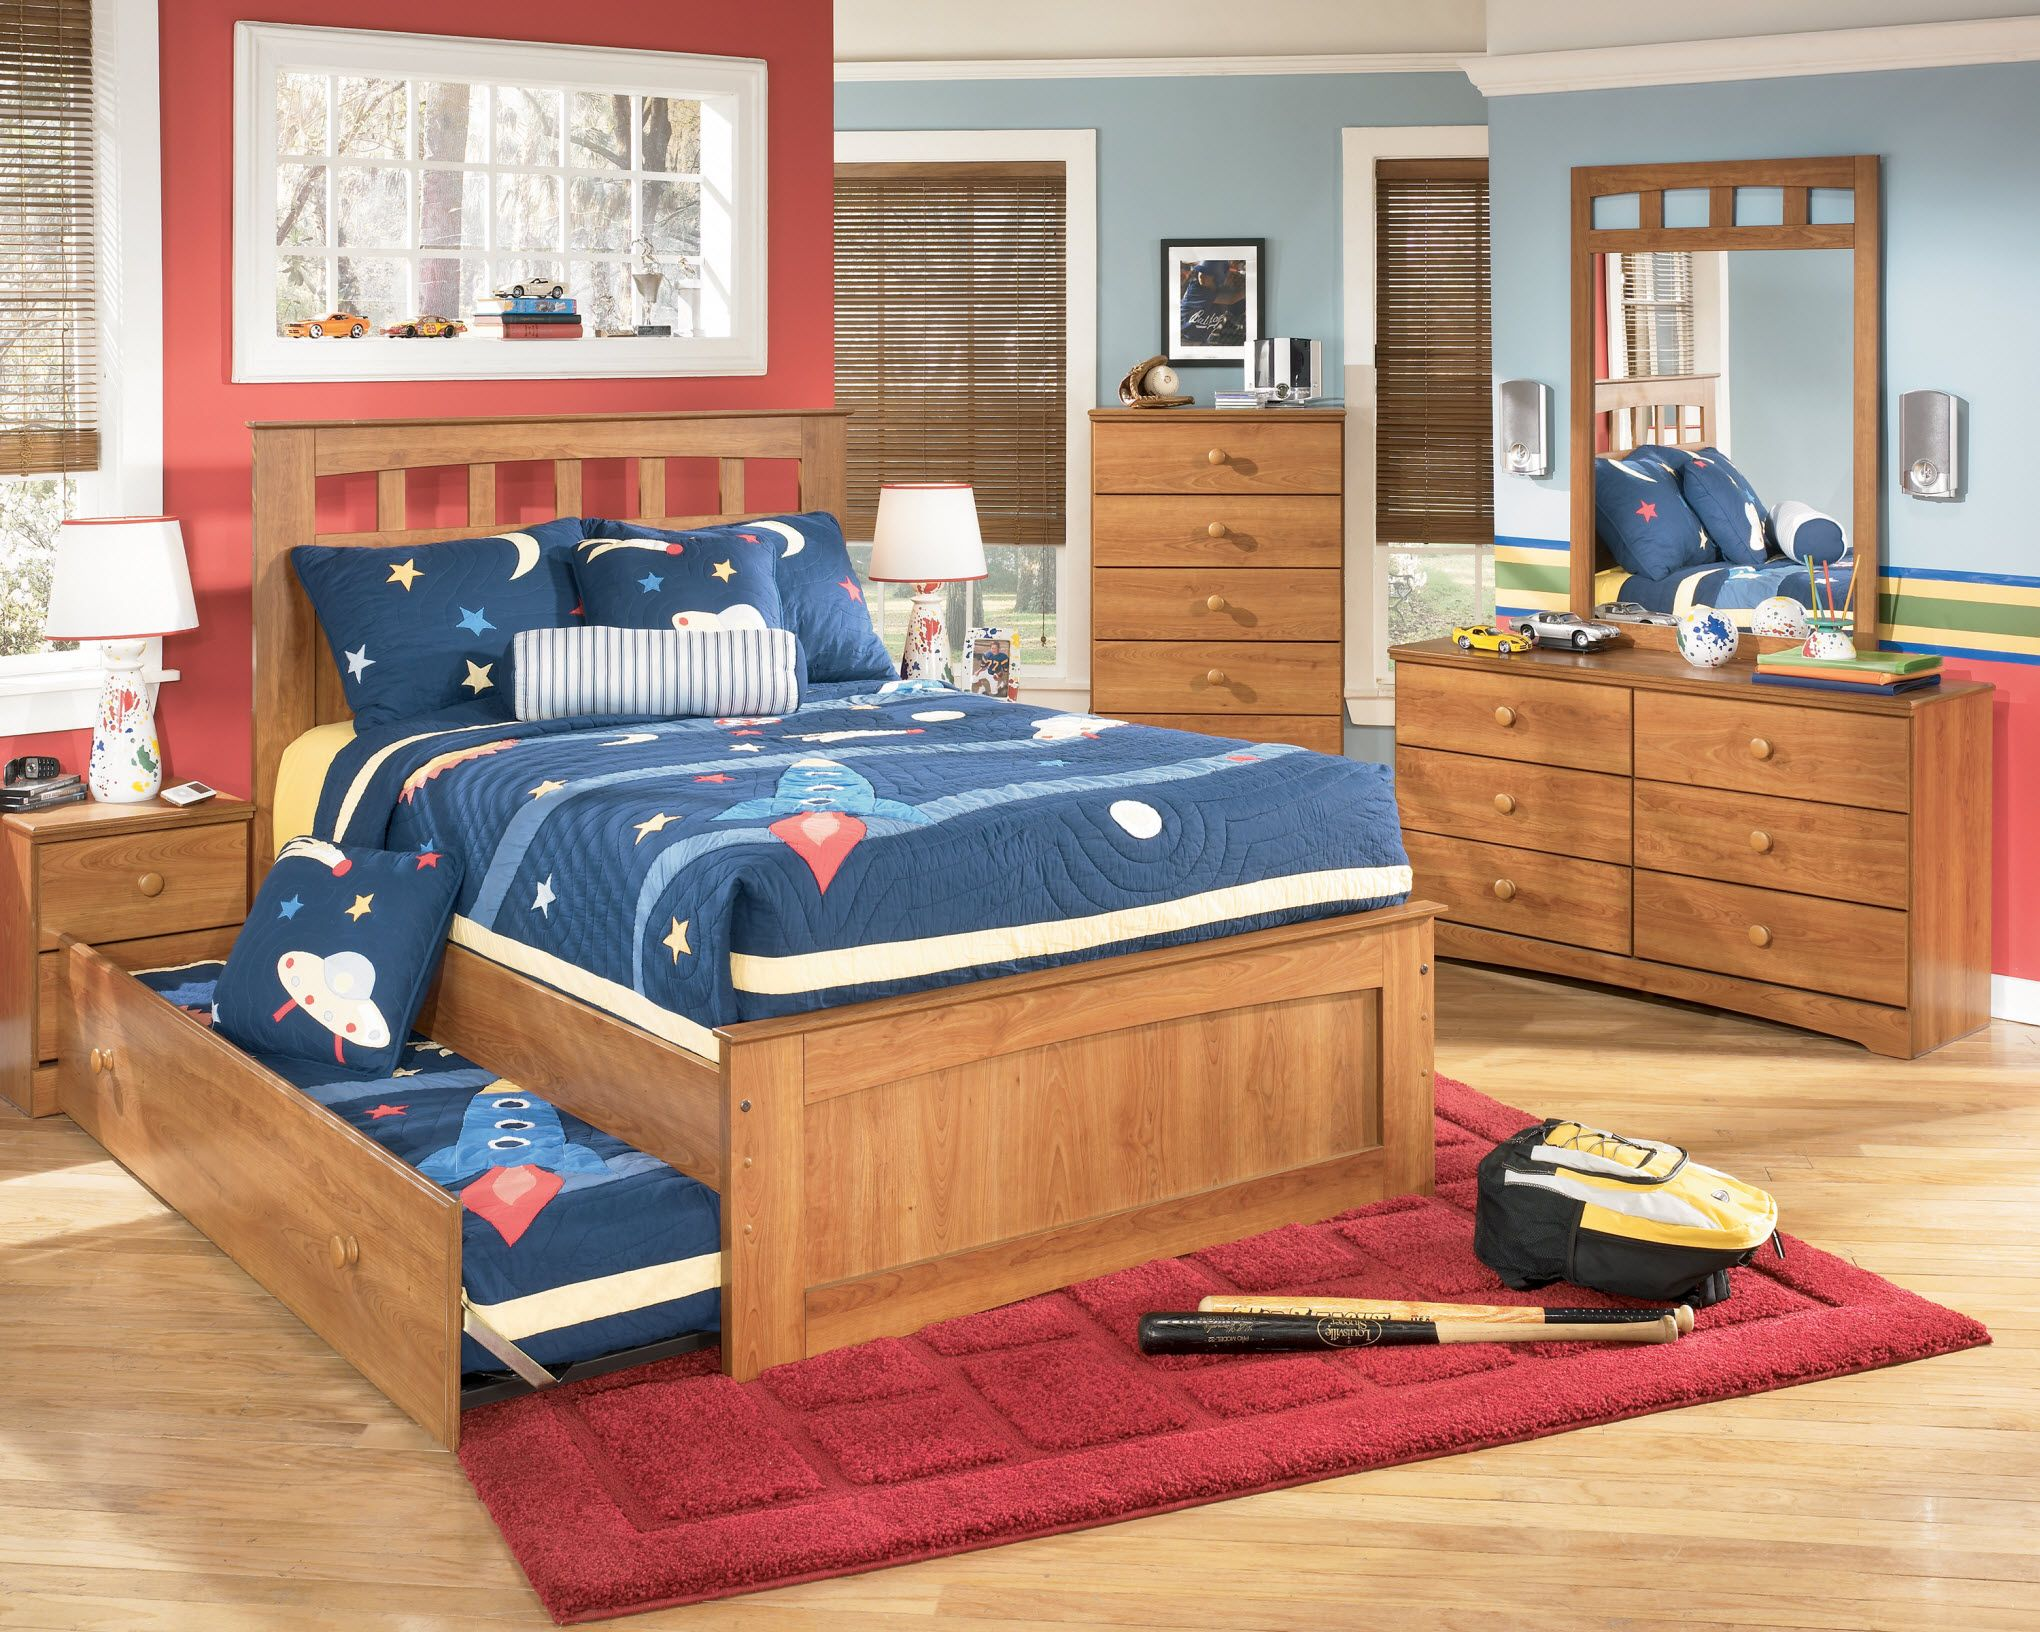 1000 Images About Kids Bedroom Furniture On Pinterest Baby Kids